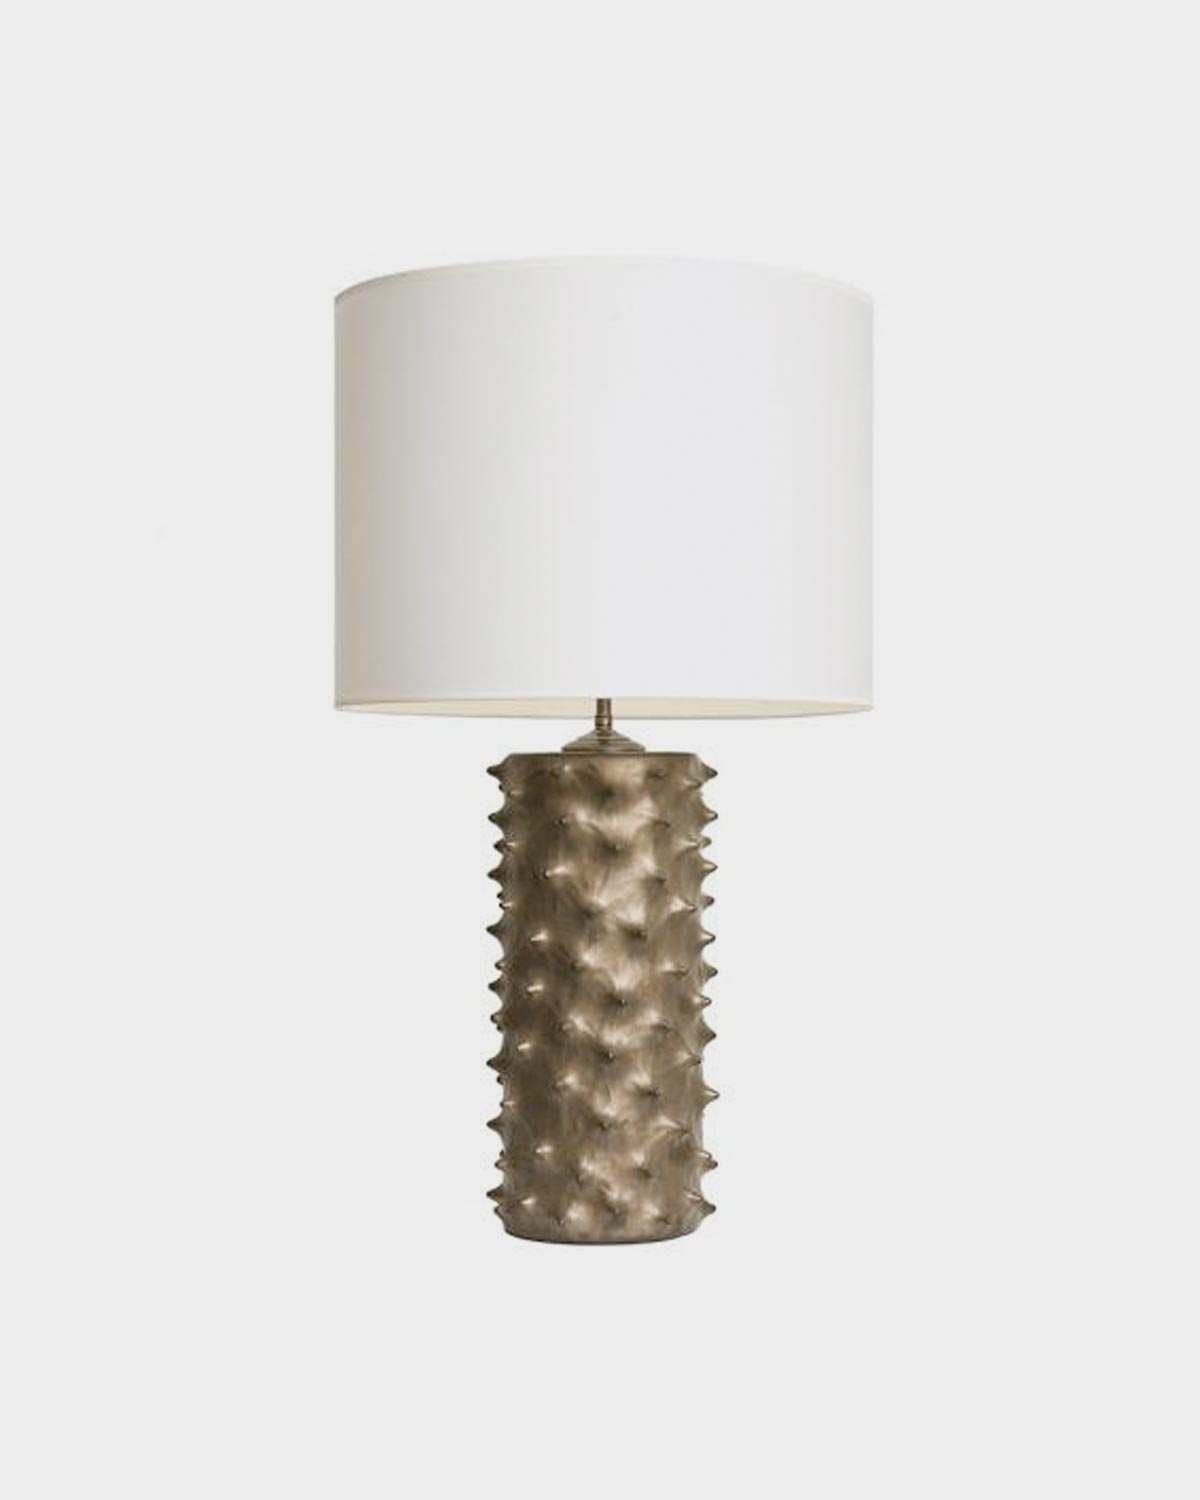 The Spina Table Lamp by Pamela Sunday